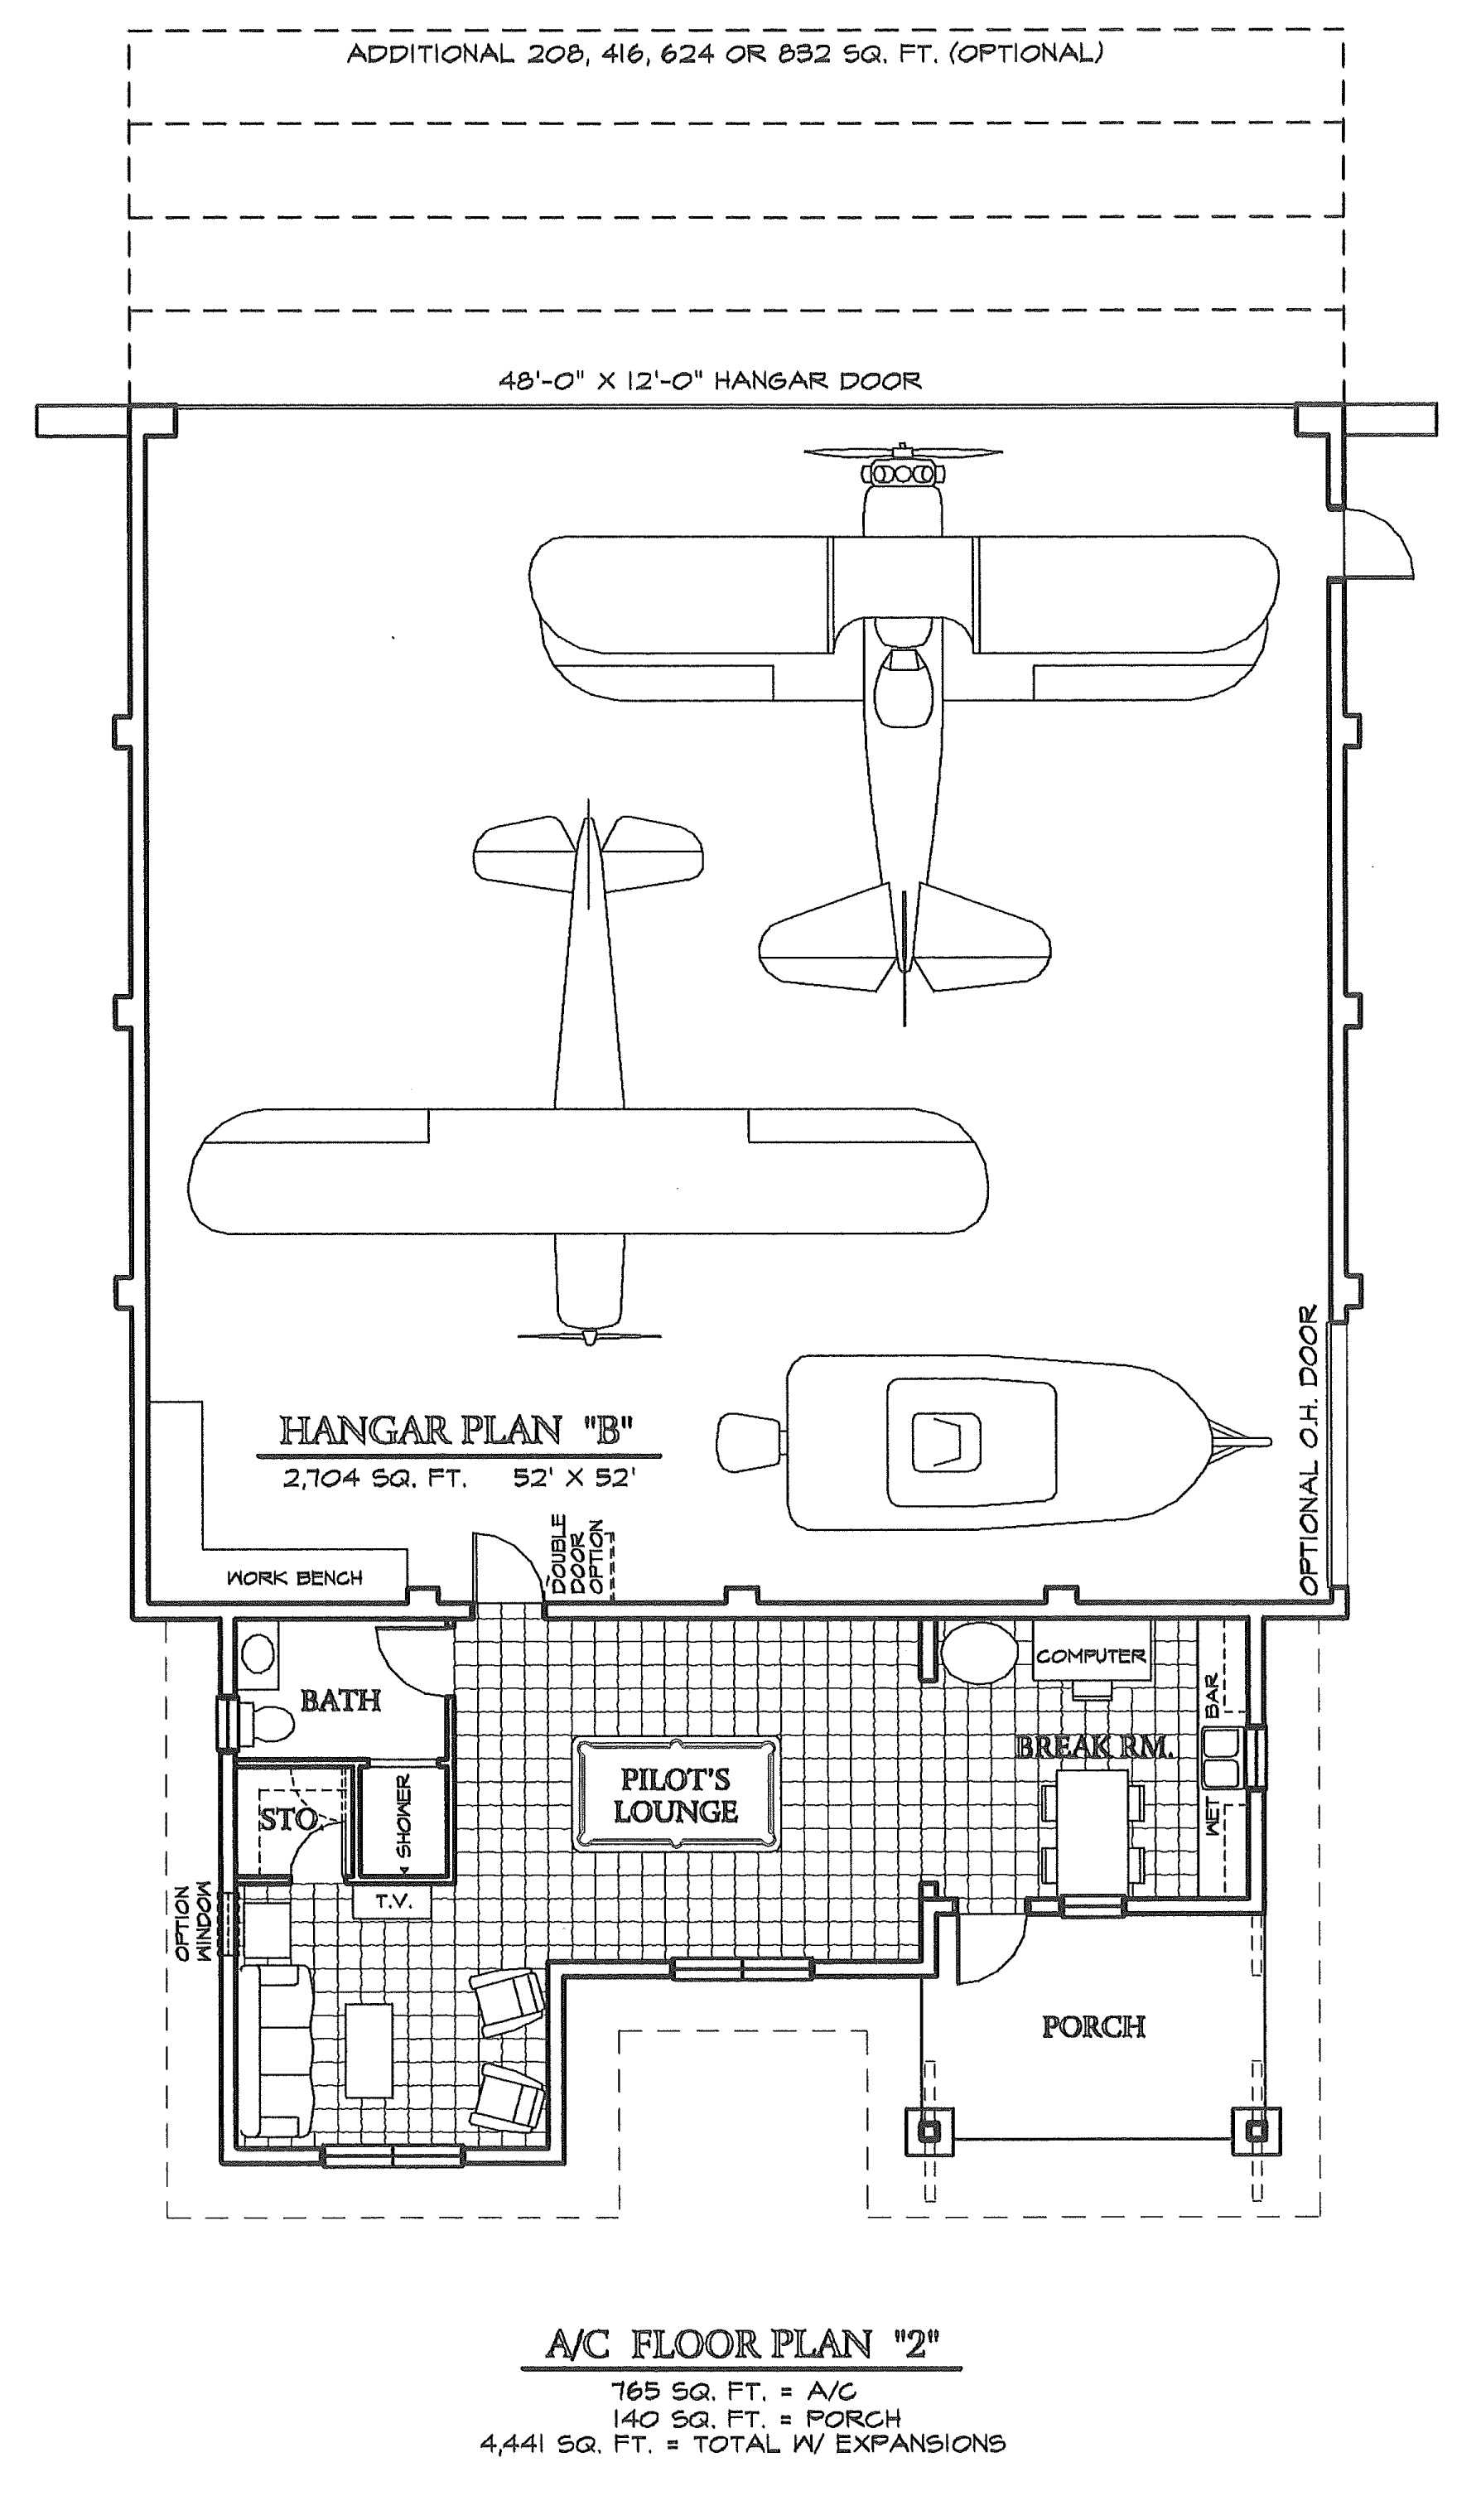 Airplane Hangar Blueprints Pictures To Pin On Pinterest